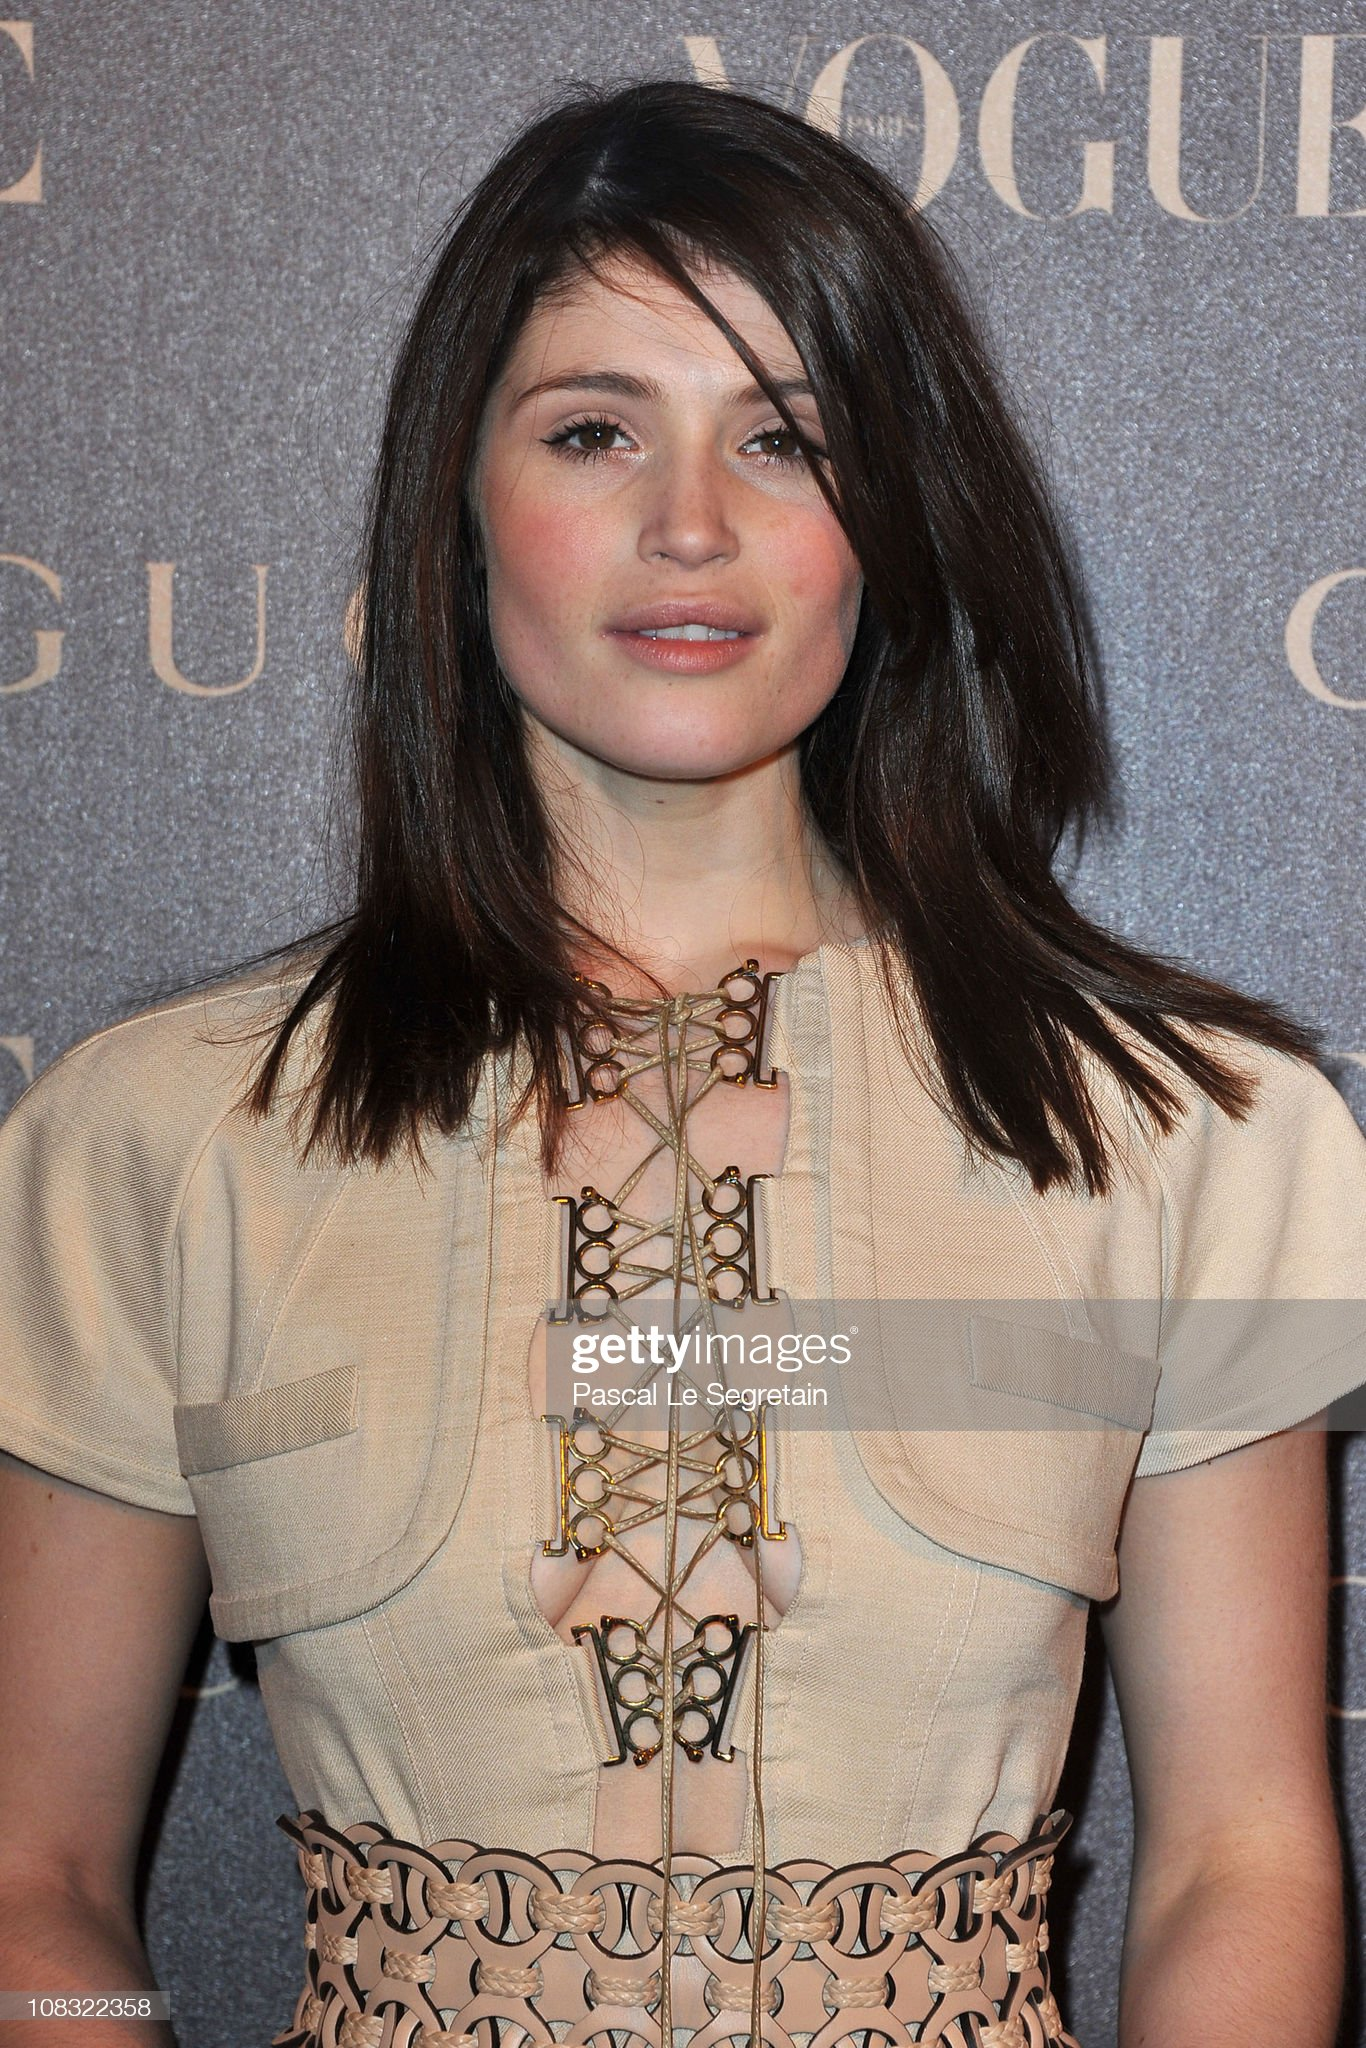 gemma-arterton-attends-vogue-paris-dinner-hosted-by-carine-roitfeld-picture-id108322358